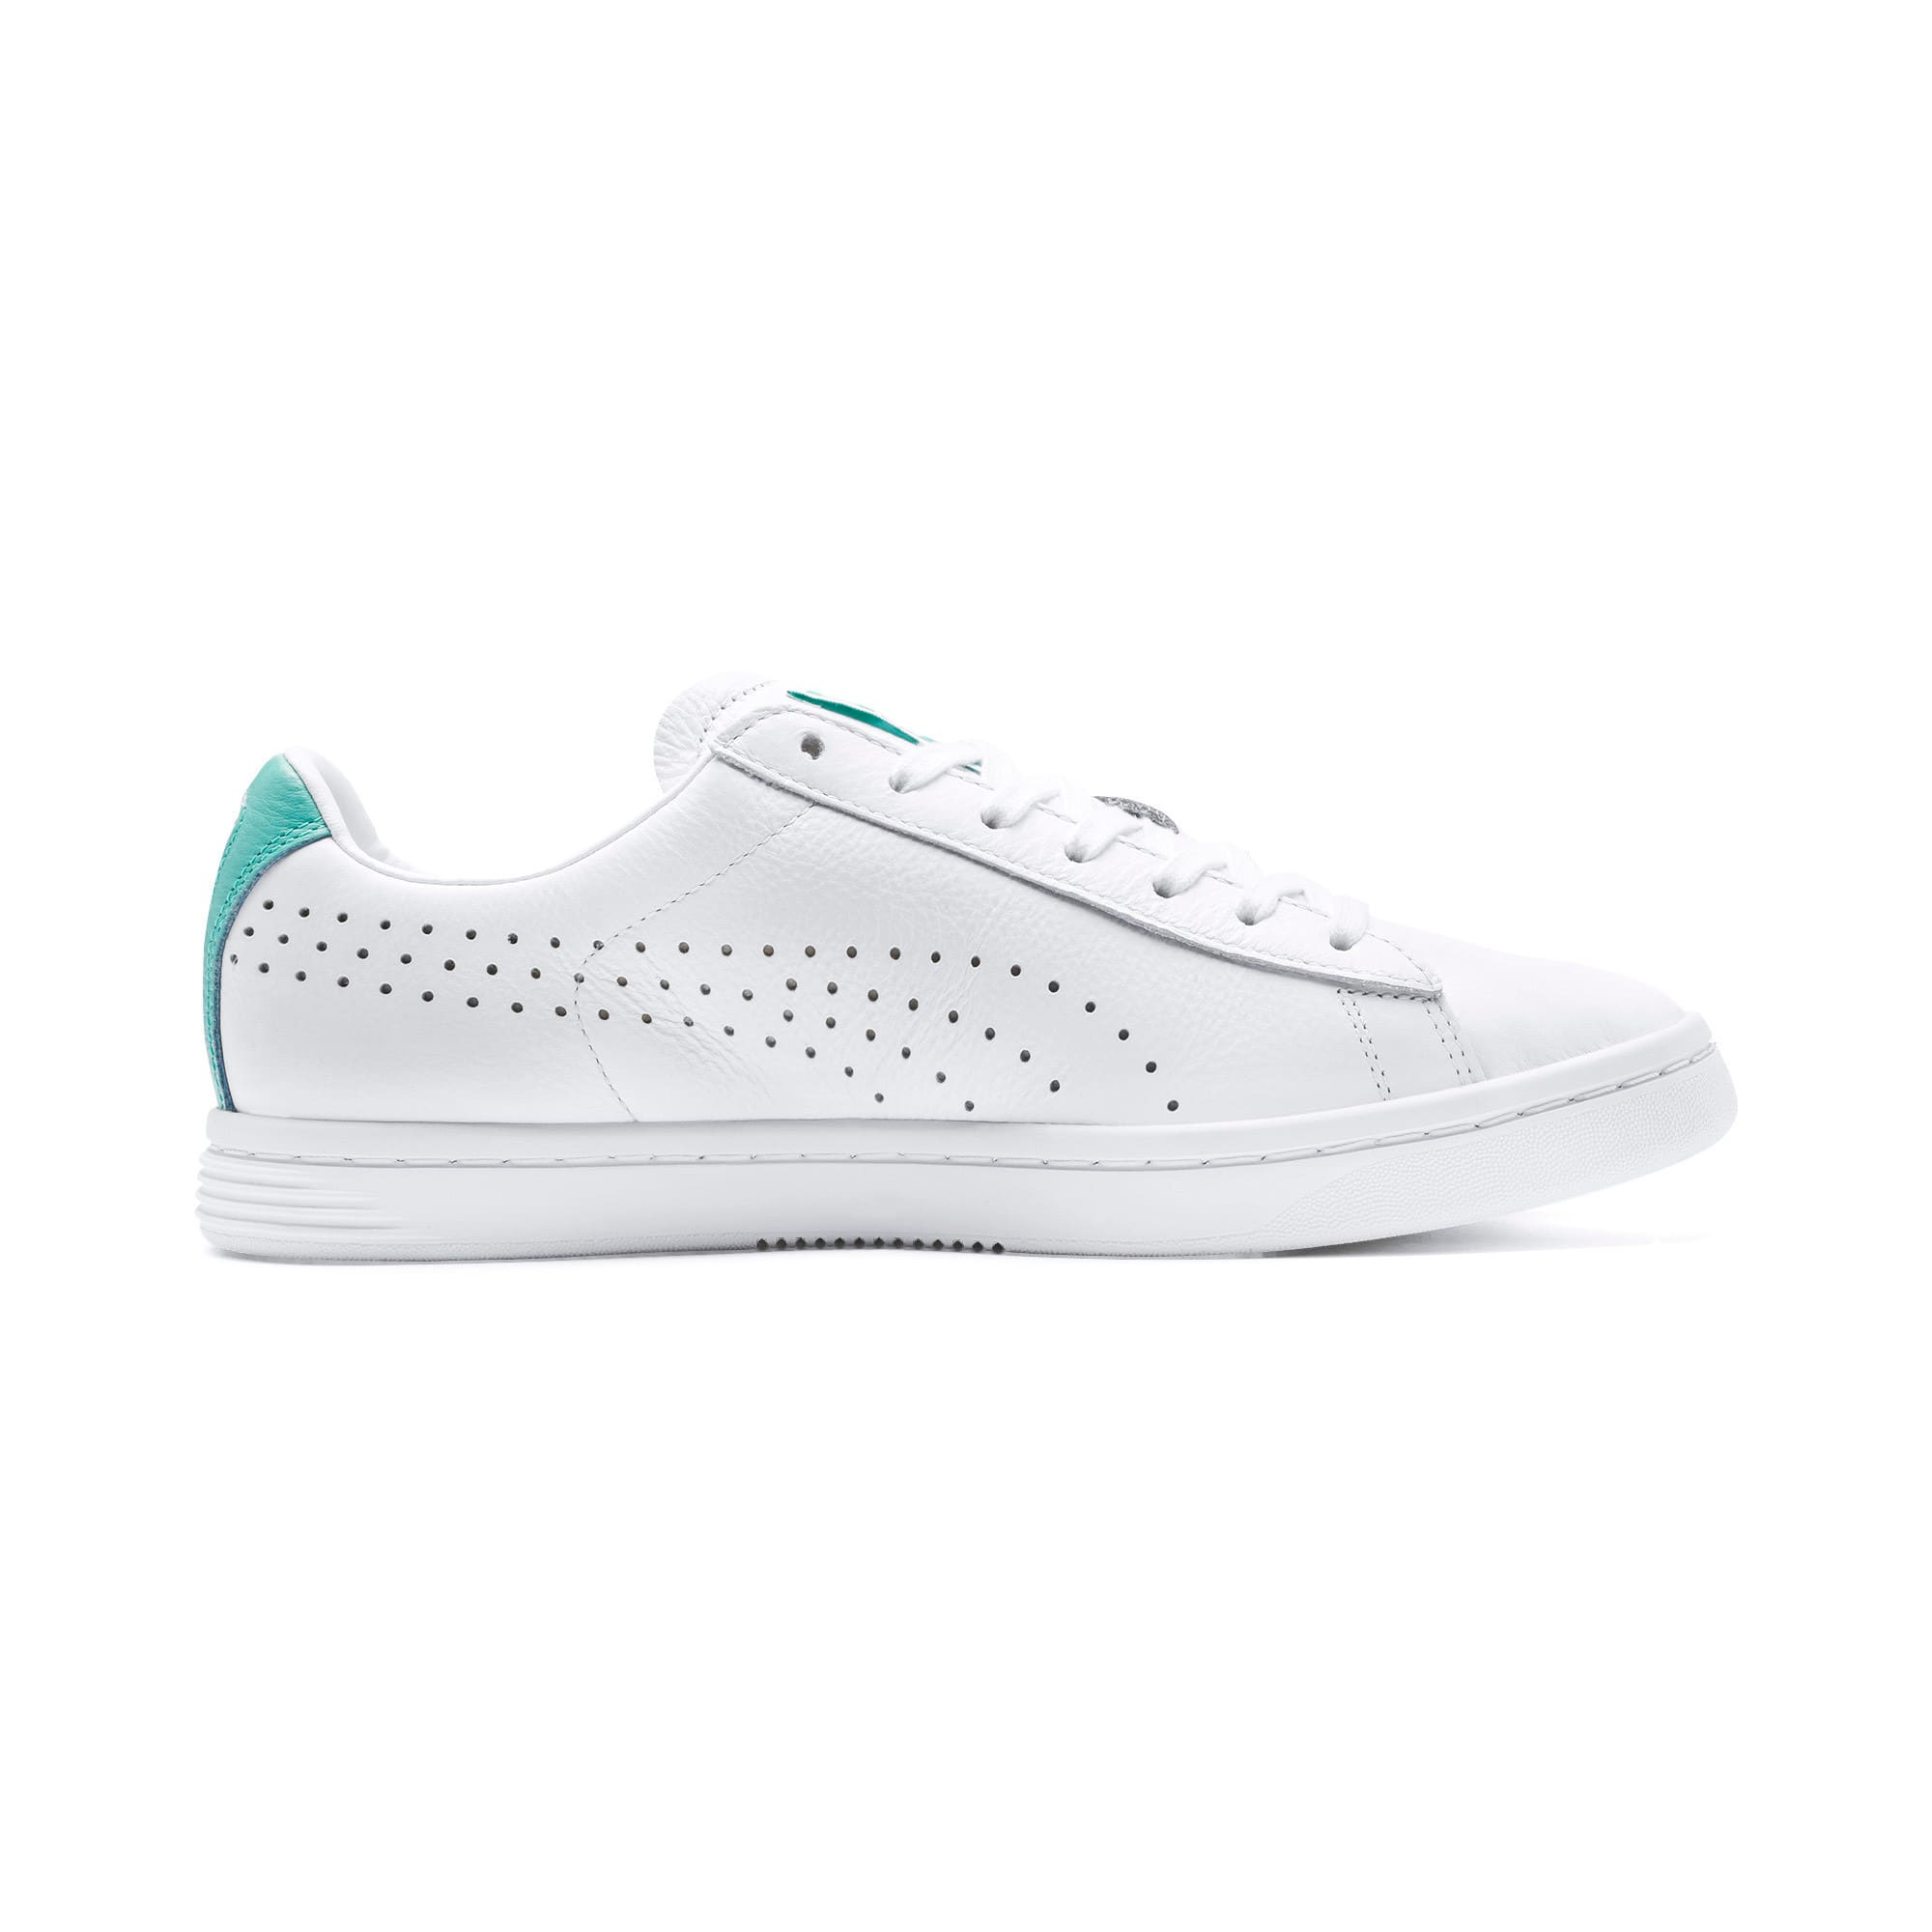 Thumbnail 6 of Court Star Sneakers, Puma White-Blue Turquoise, medium